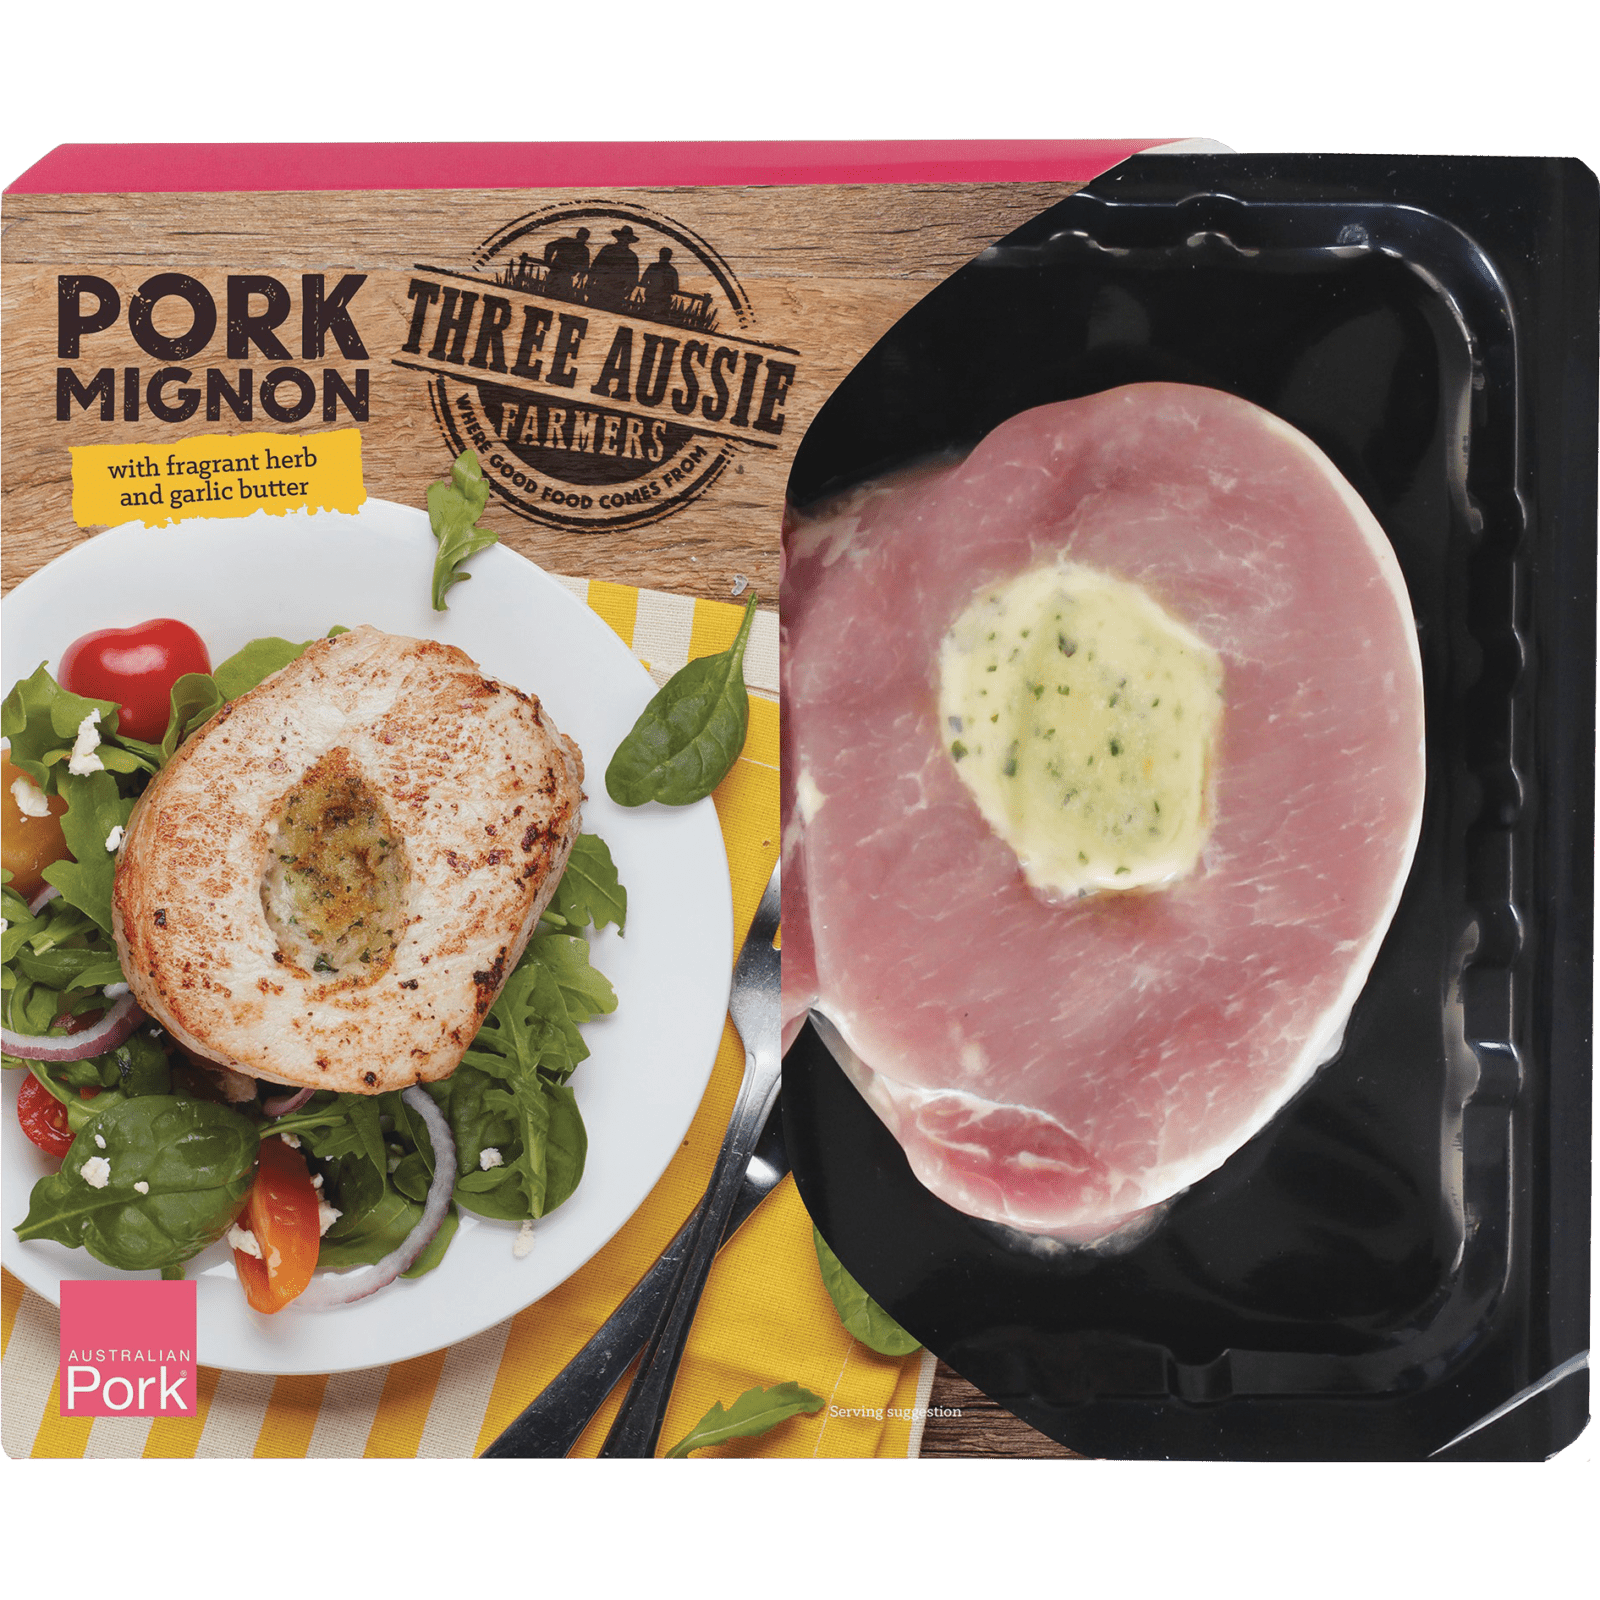 Three Aussie Farmers Pork Mignon with Fragrant Herb and Garlic Butter